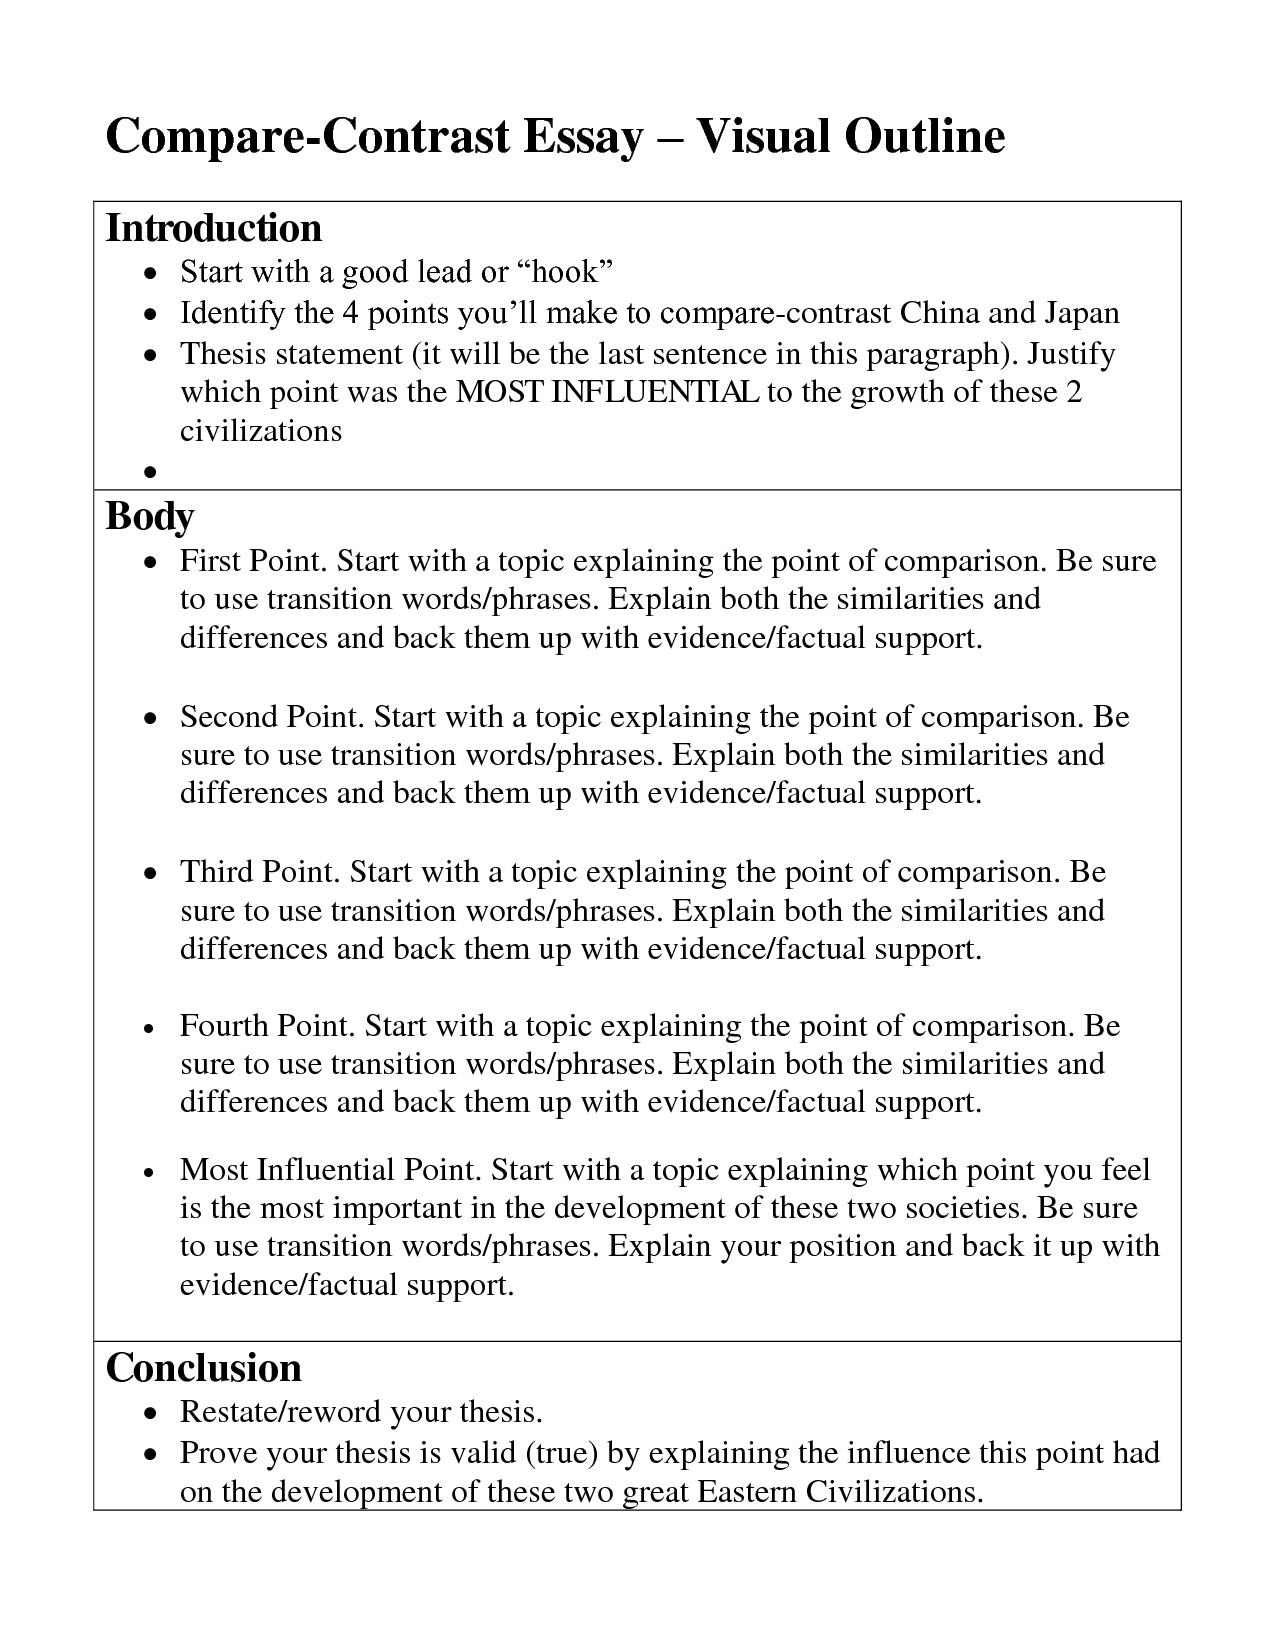 007 How To Conclude Compare And Contrast Essay Example Fantastic A Start Writing Comparison Write Begin Full